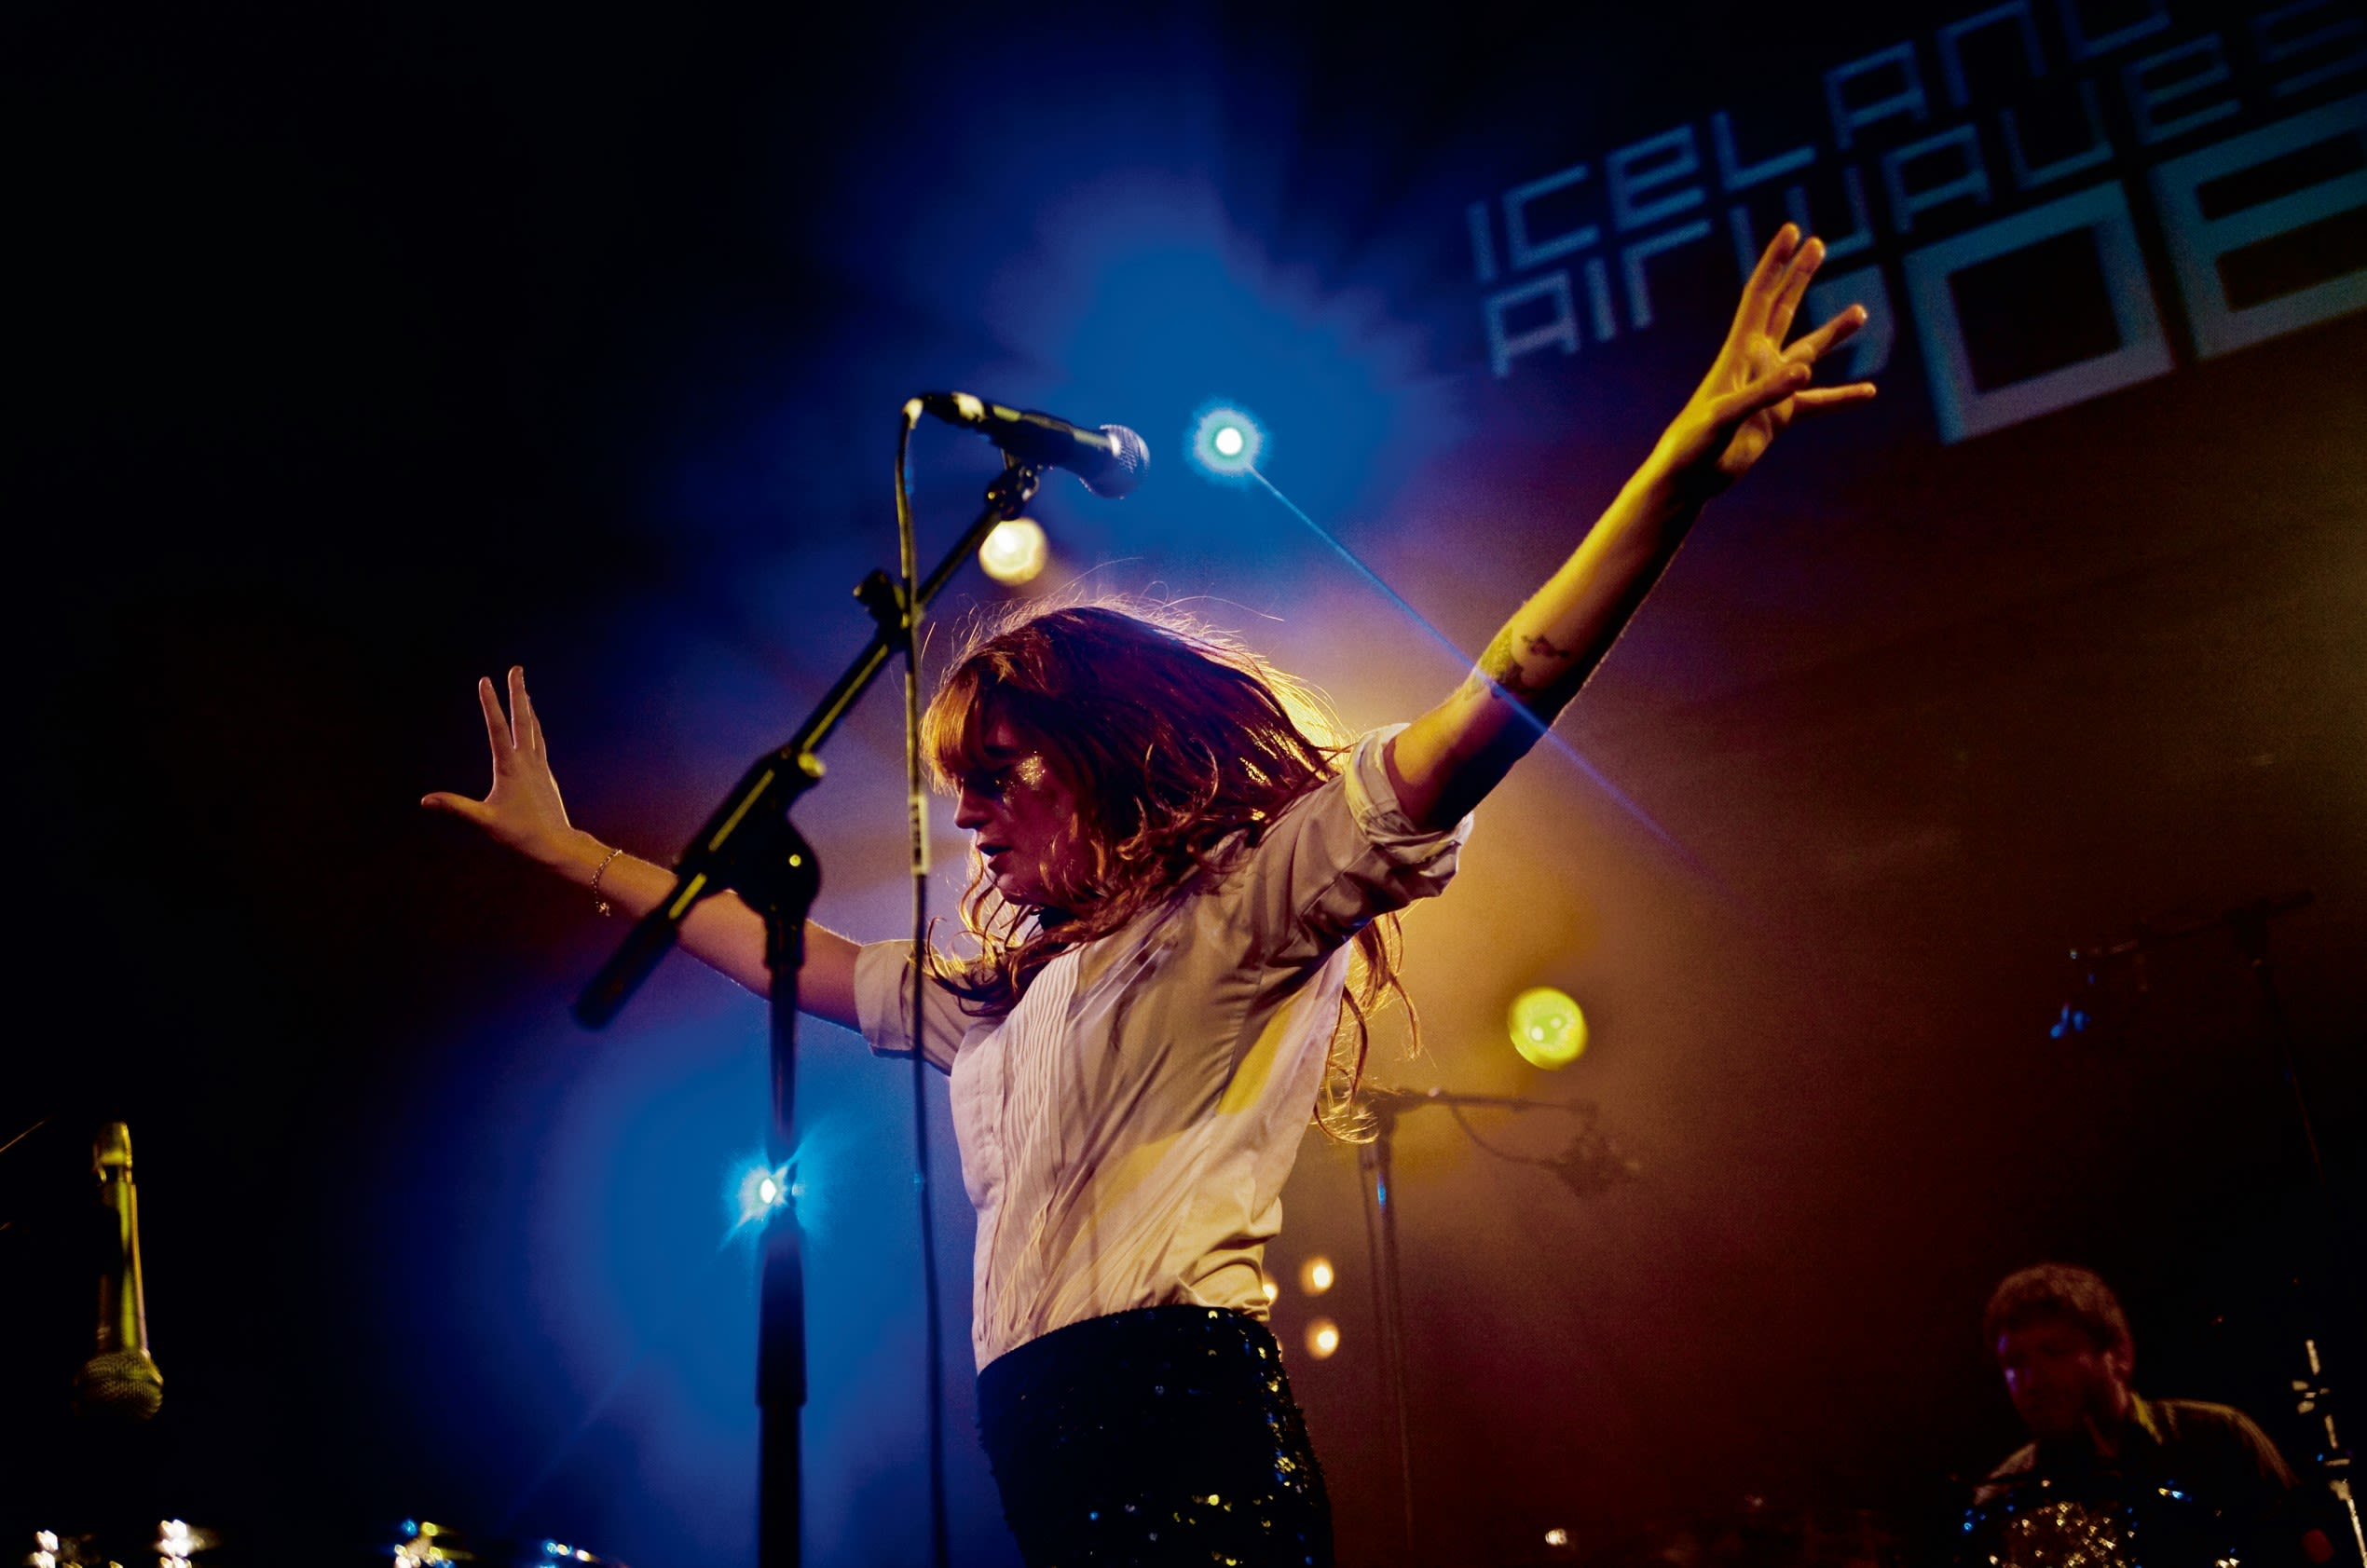 Florence and the Machine performing on-stage with her arms spread wide in dance